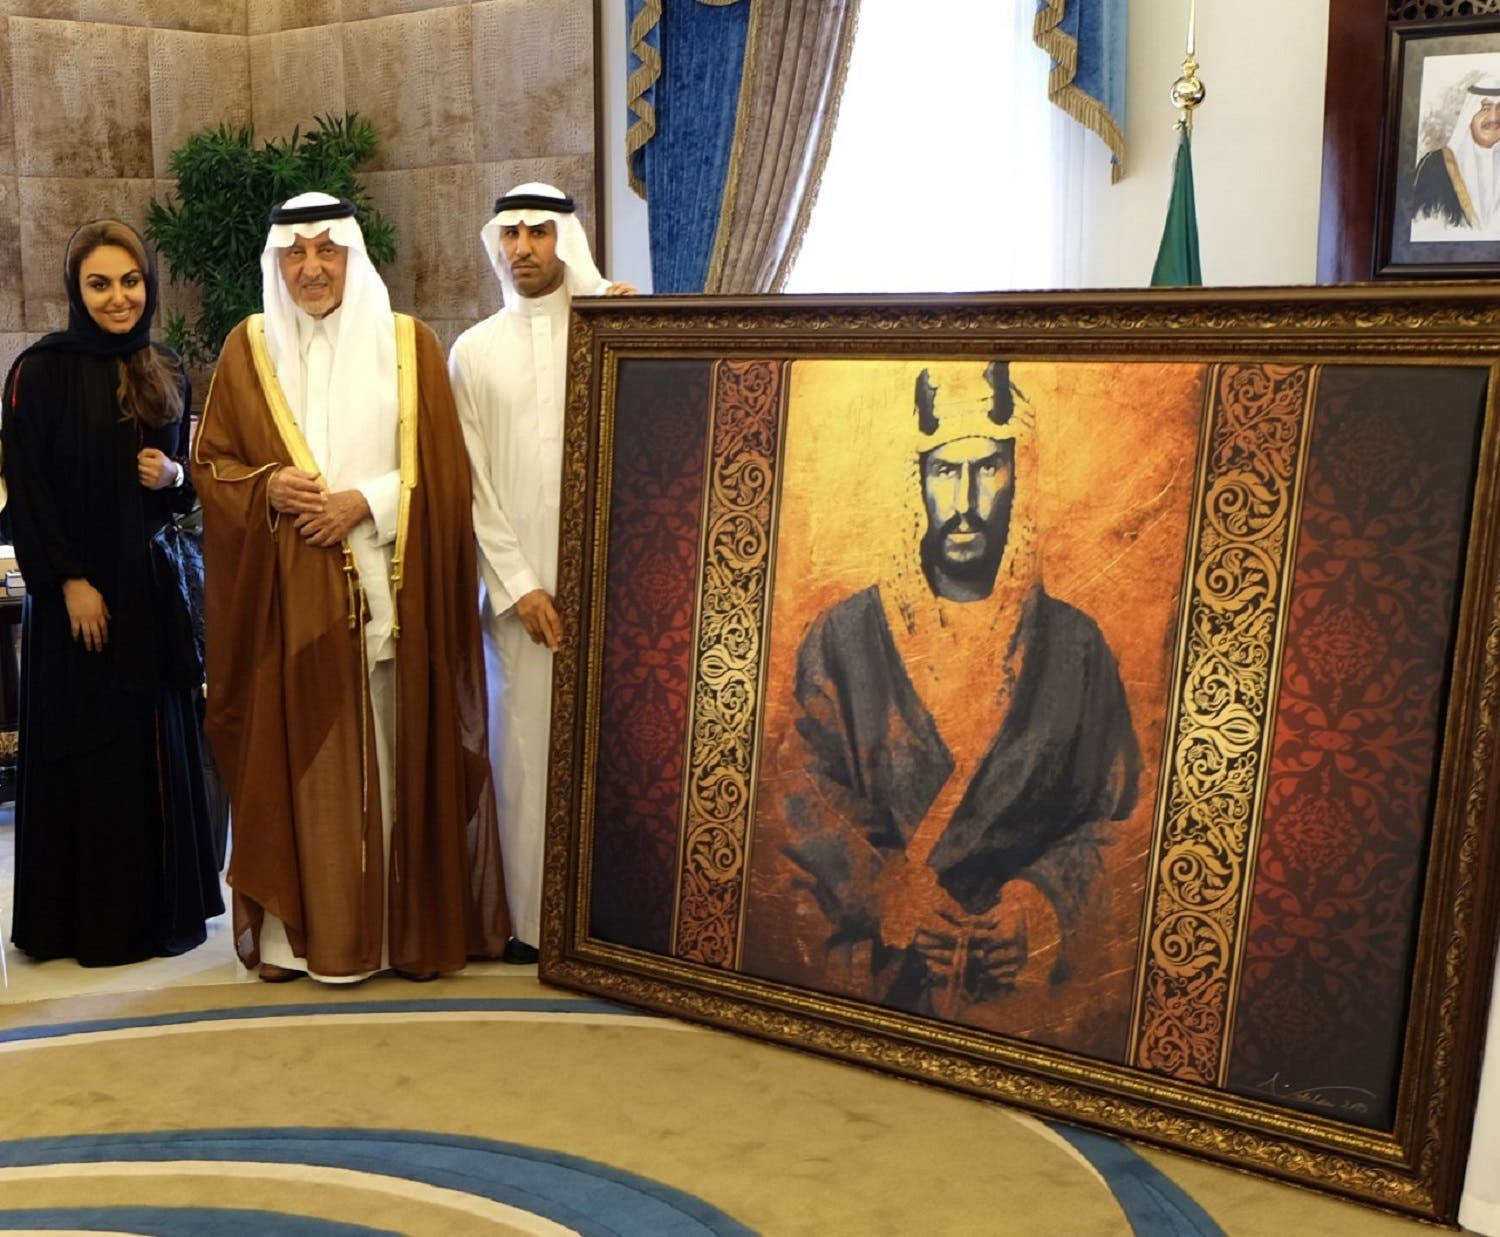 Abu al-Jadayel says she is proud of her work, which documents history and promotes patriotism. (Supplied)